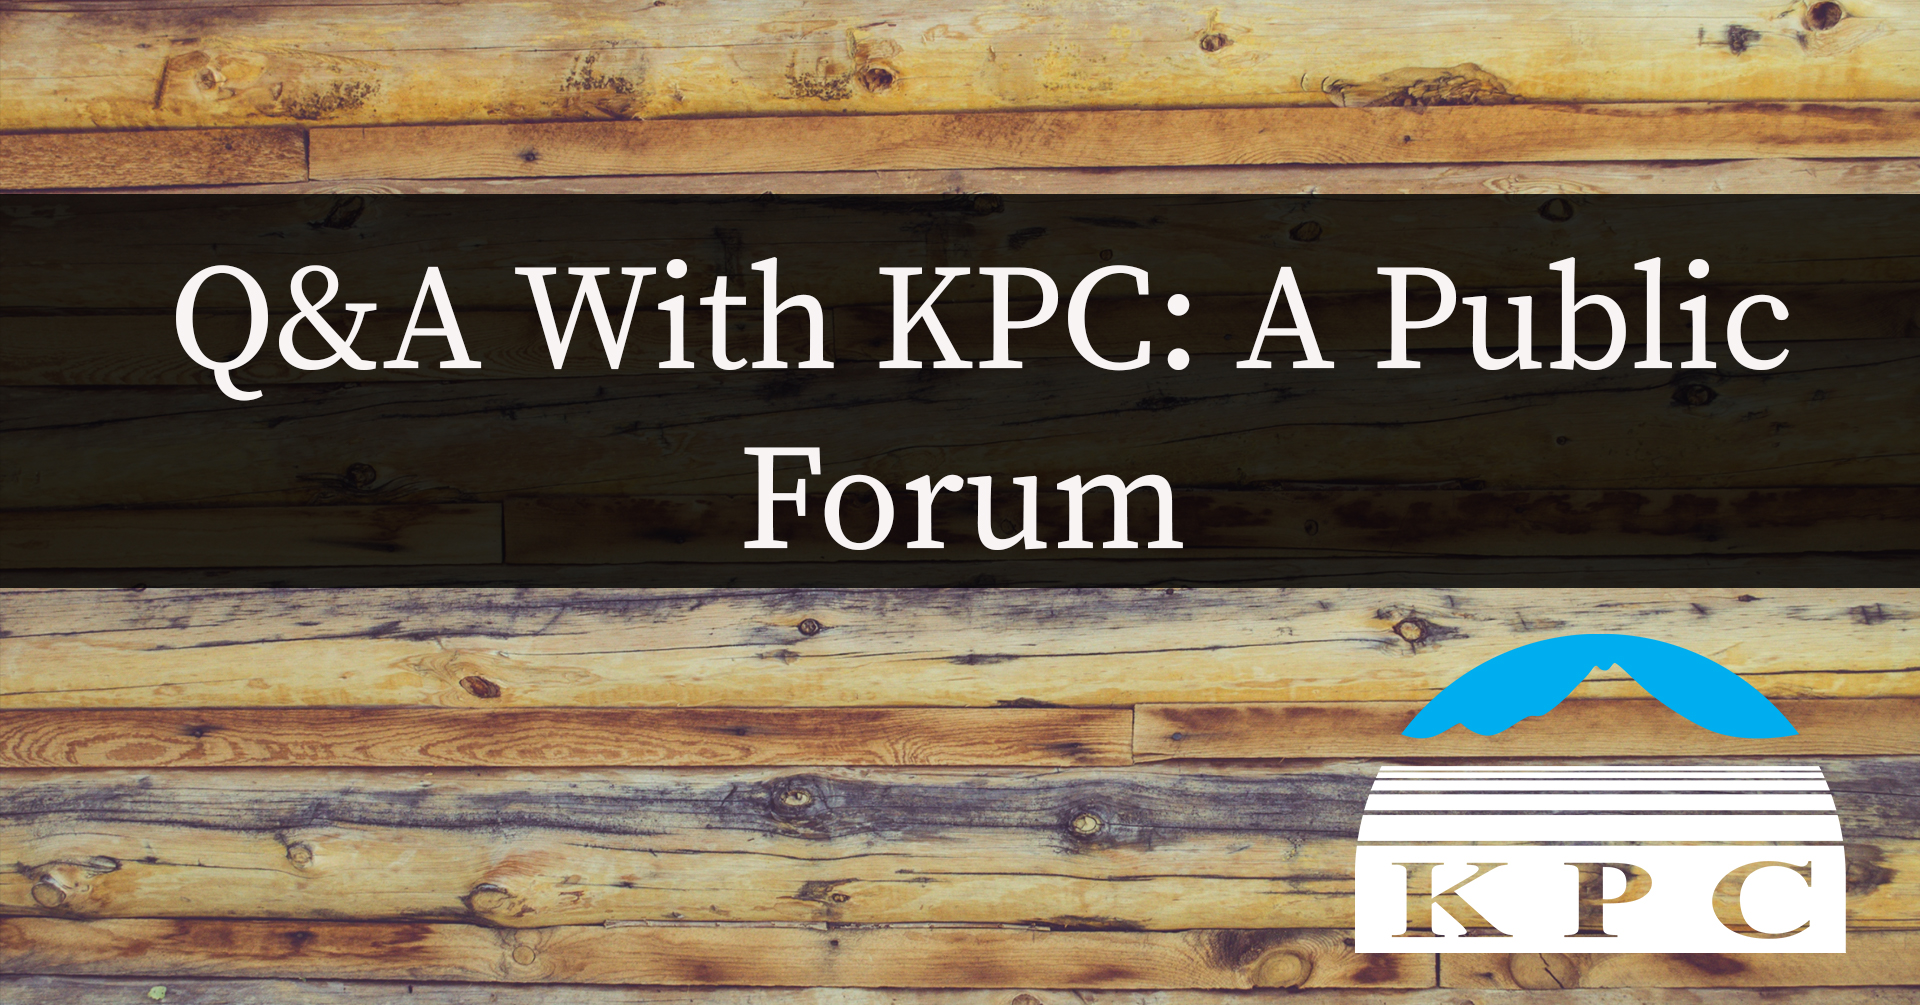 Wooden background with the KPC logo and the words Q&A with KPC: A public Forum